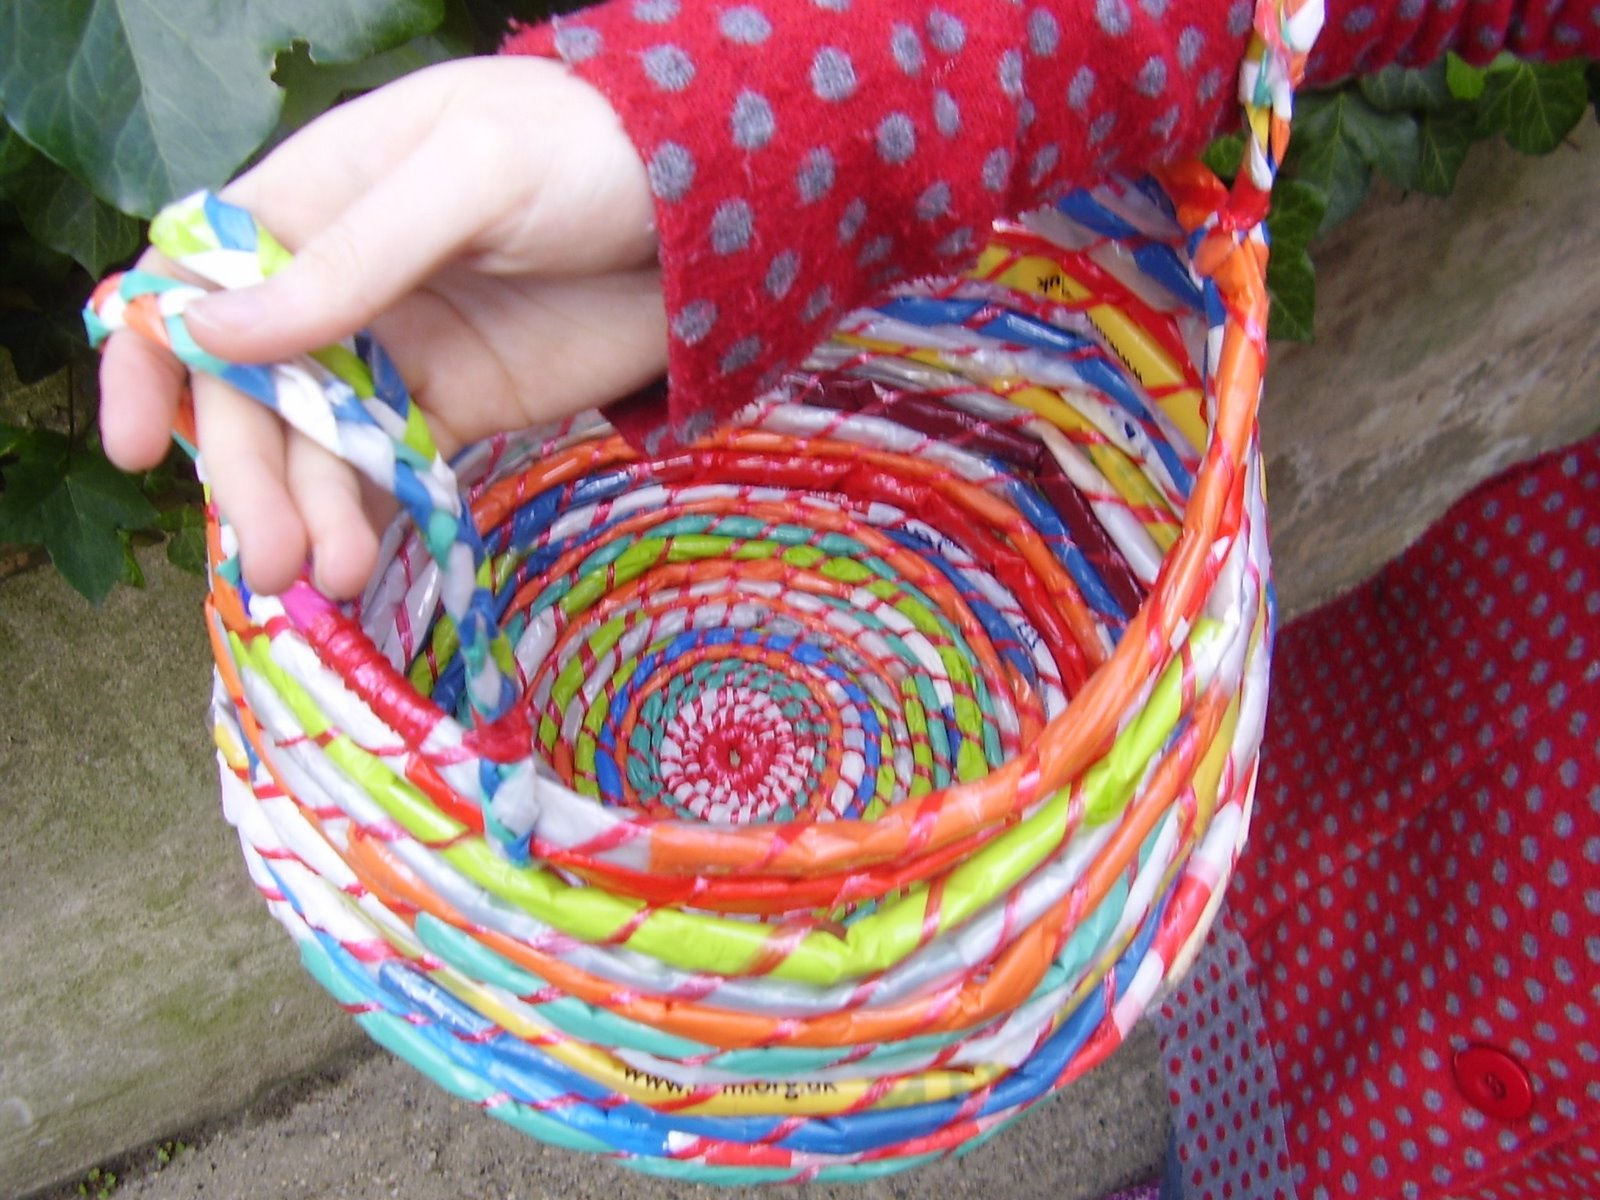 recycling by Weaving plastic bags